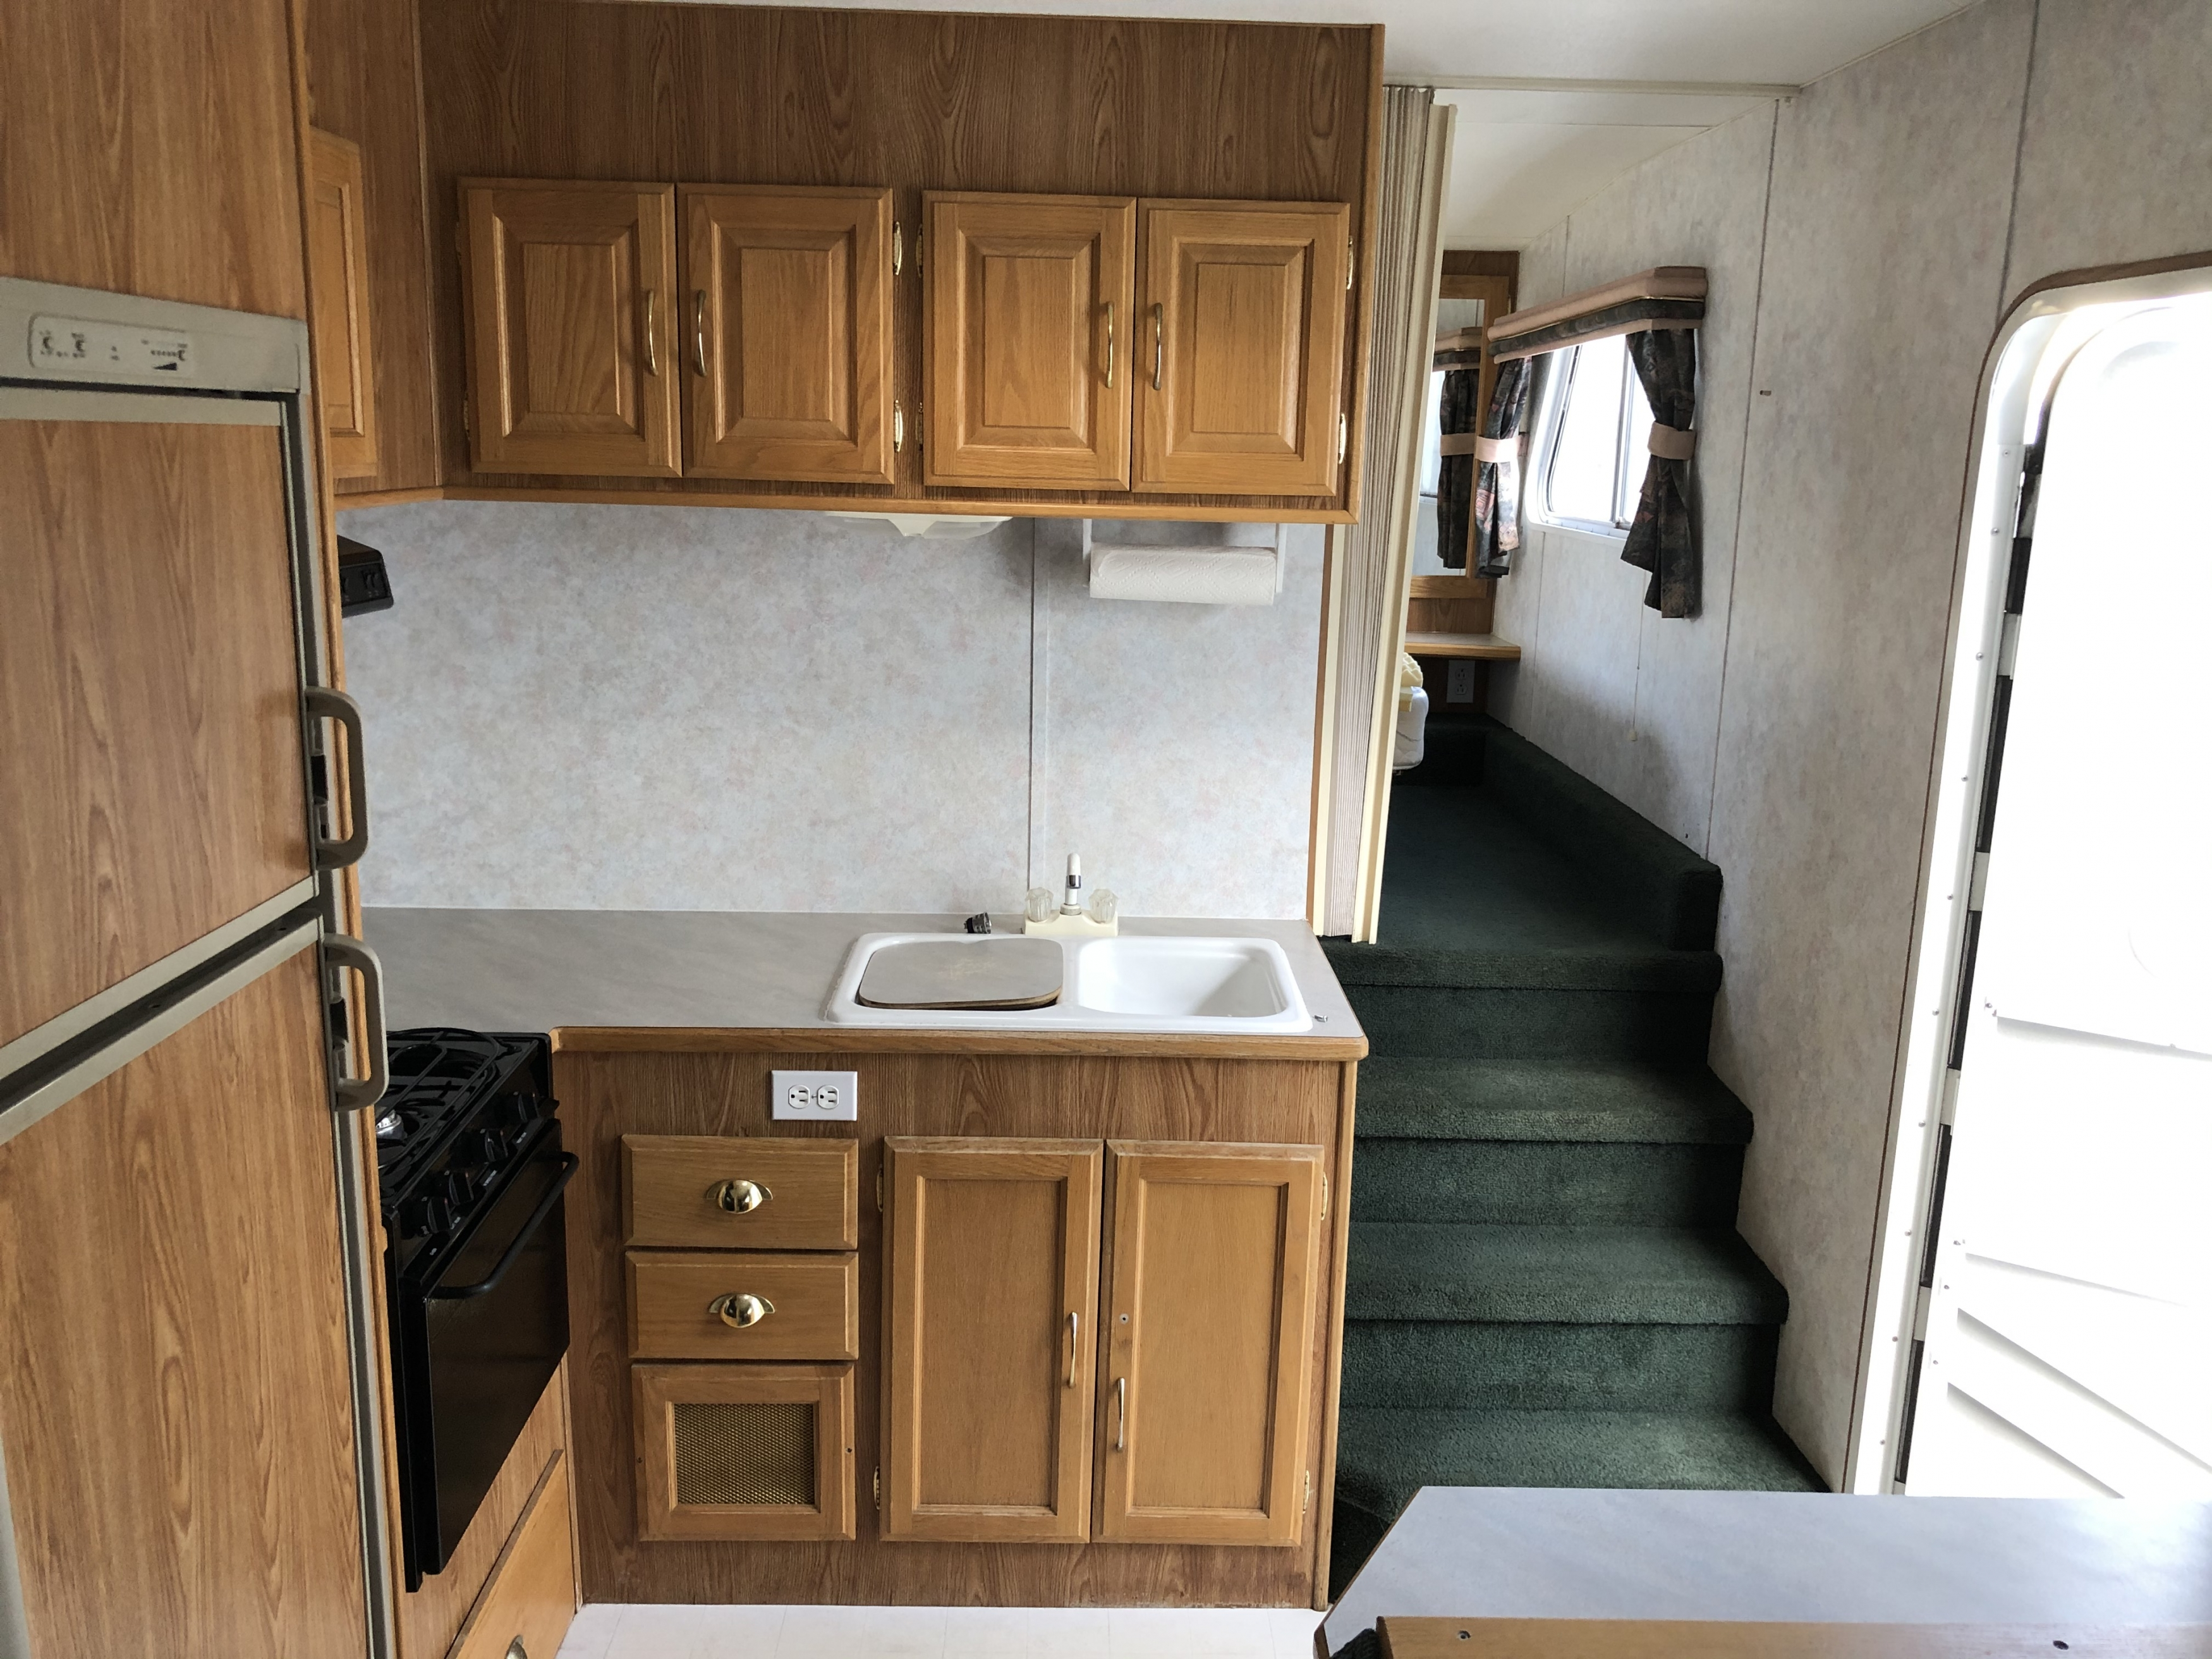 25' Frontier 5th Wheel Kitchen interior view